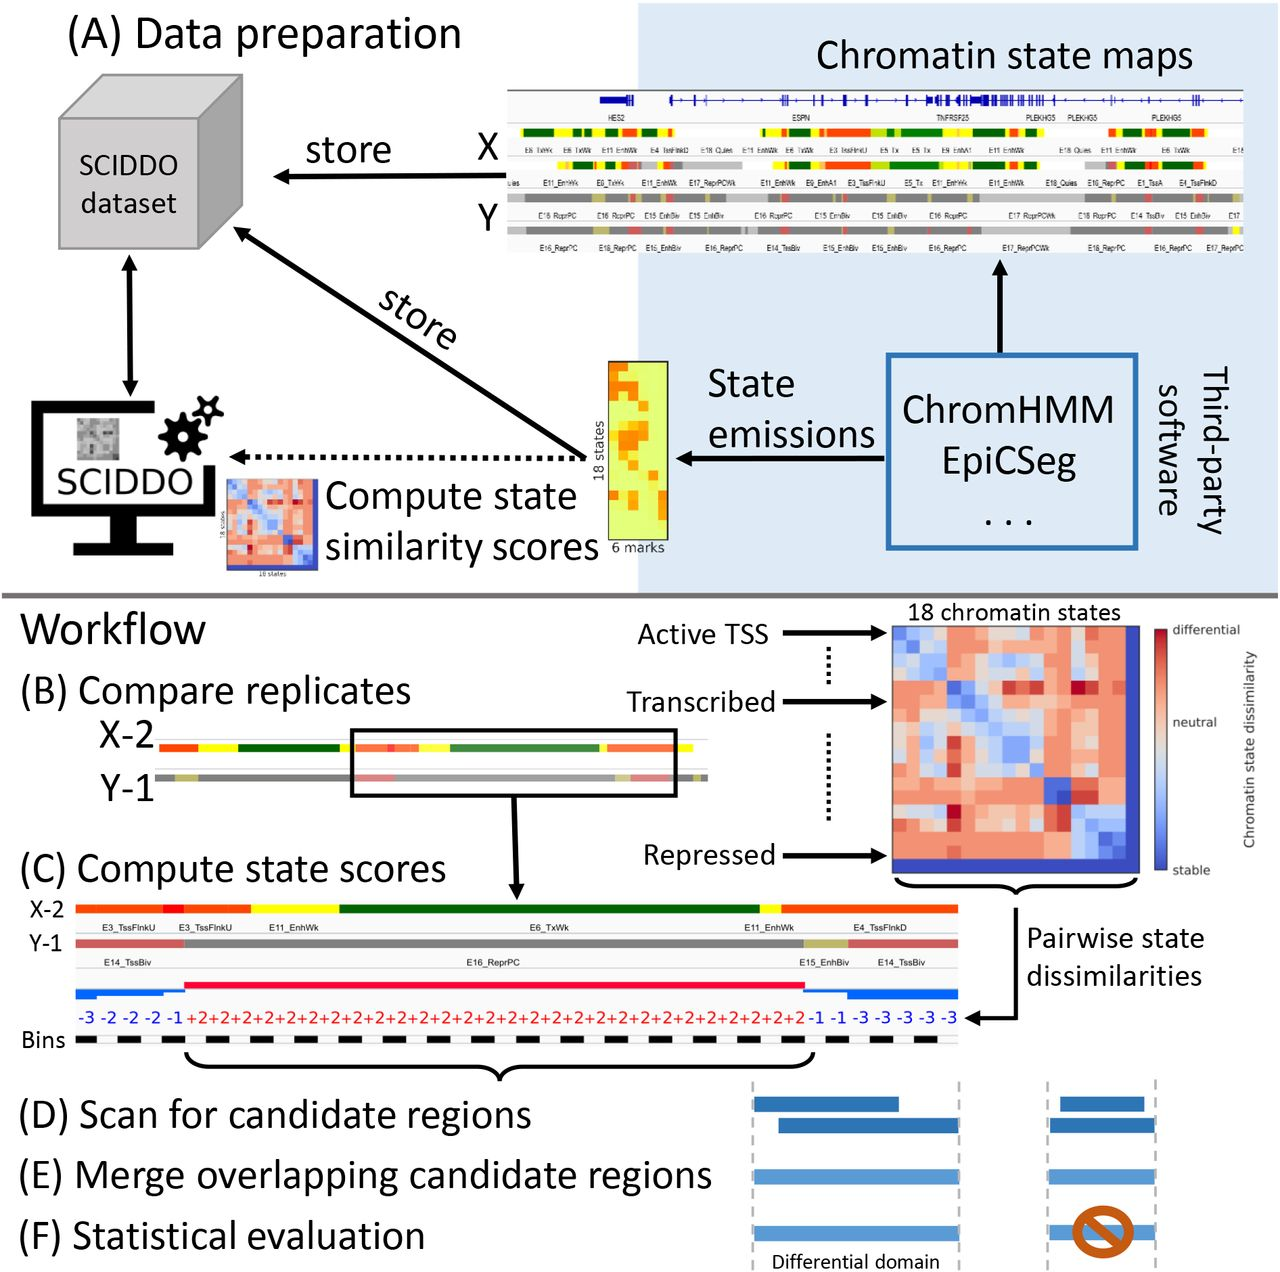 Fast Detection of Differential Chromatin Domains with SCIDDO